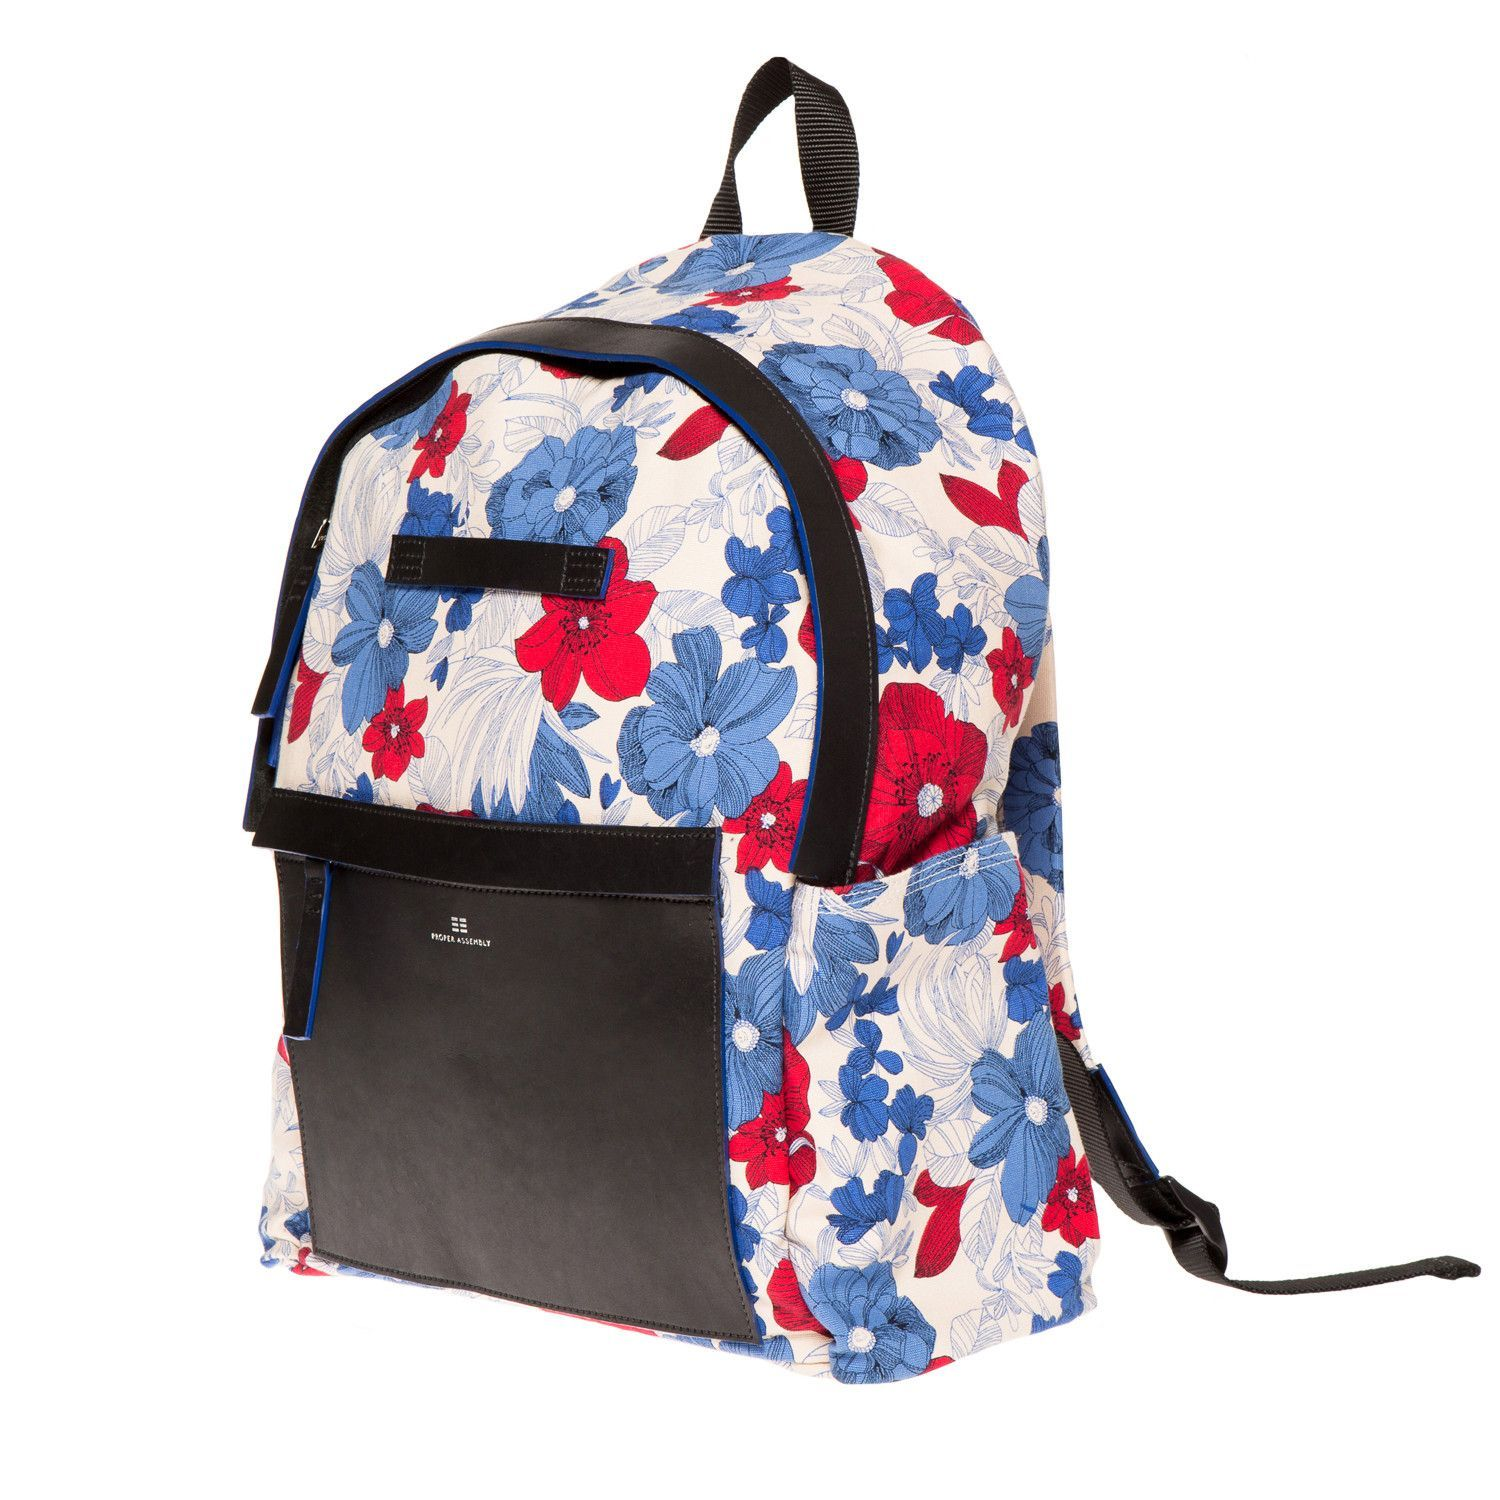 The No. 5 Backpack Umbria